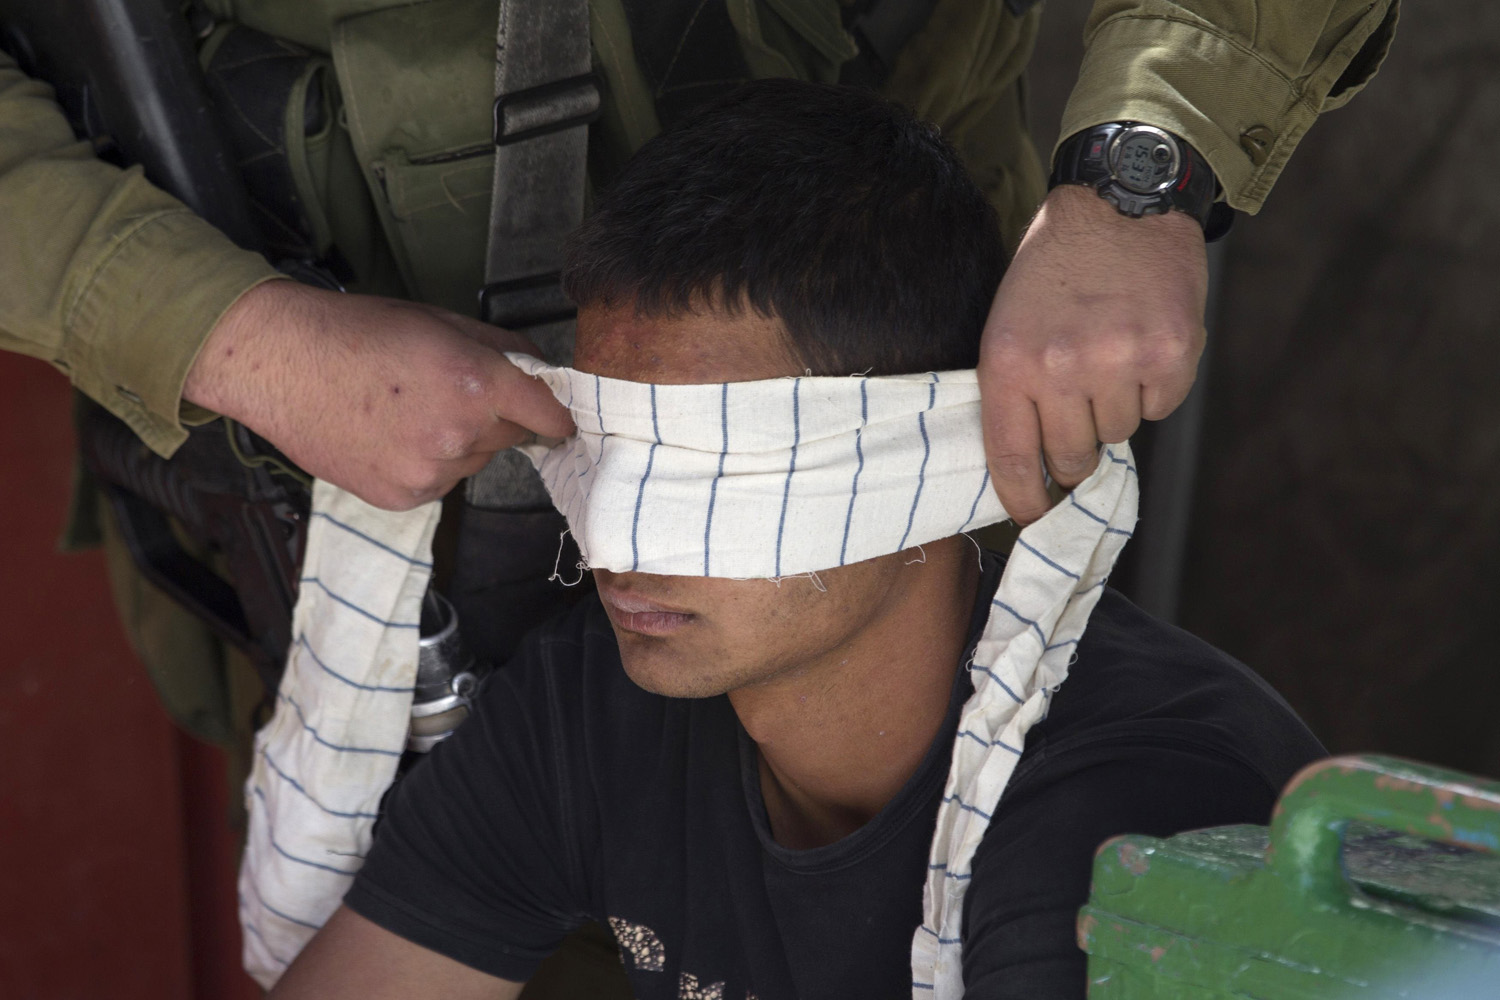 Jun. 16, 2014. An Israeli soldier blindfolds of a Palestinian suspected of throwing stones as he detains him during clashes in the West Bank City of Hebron.